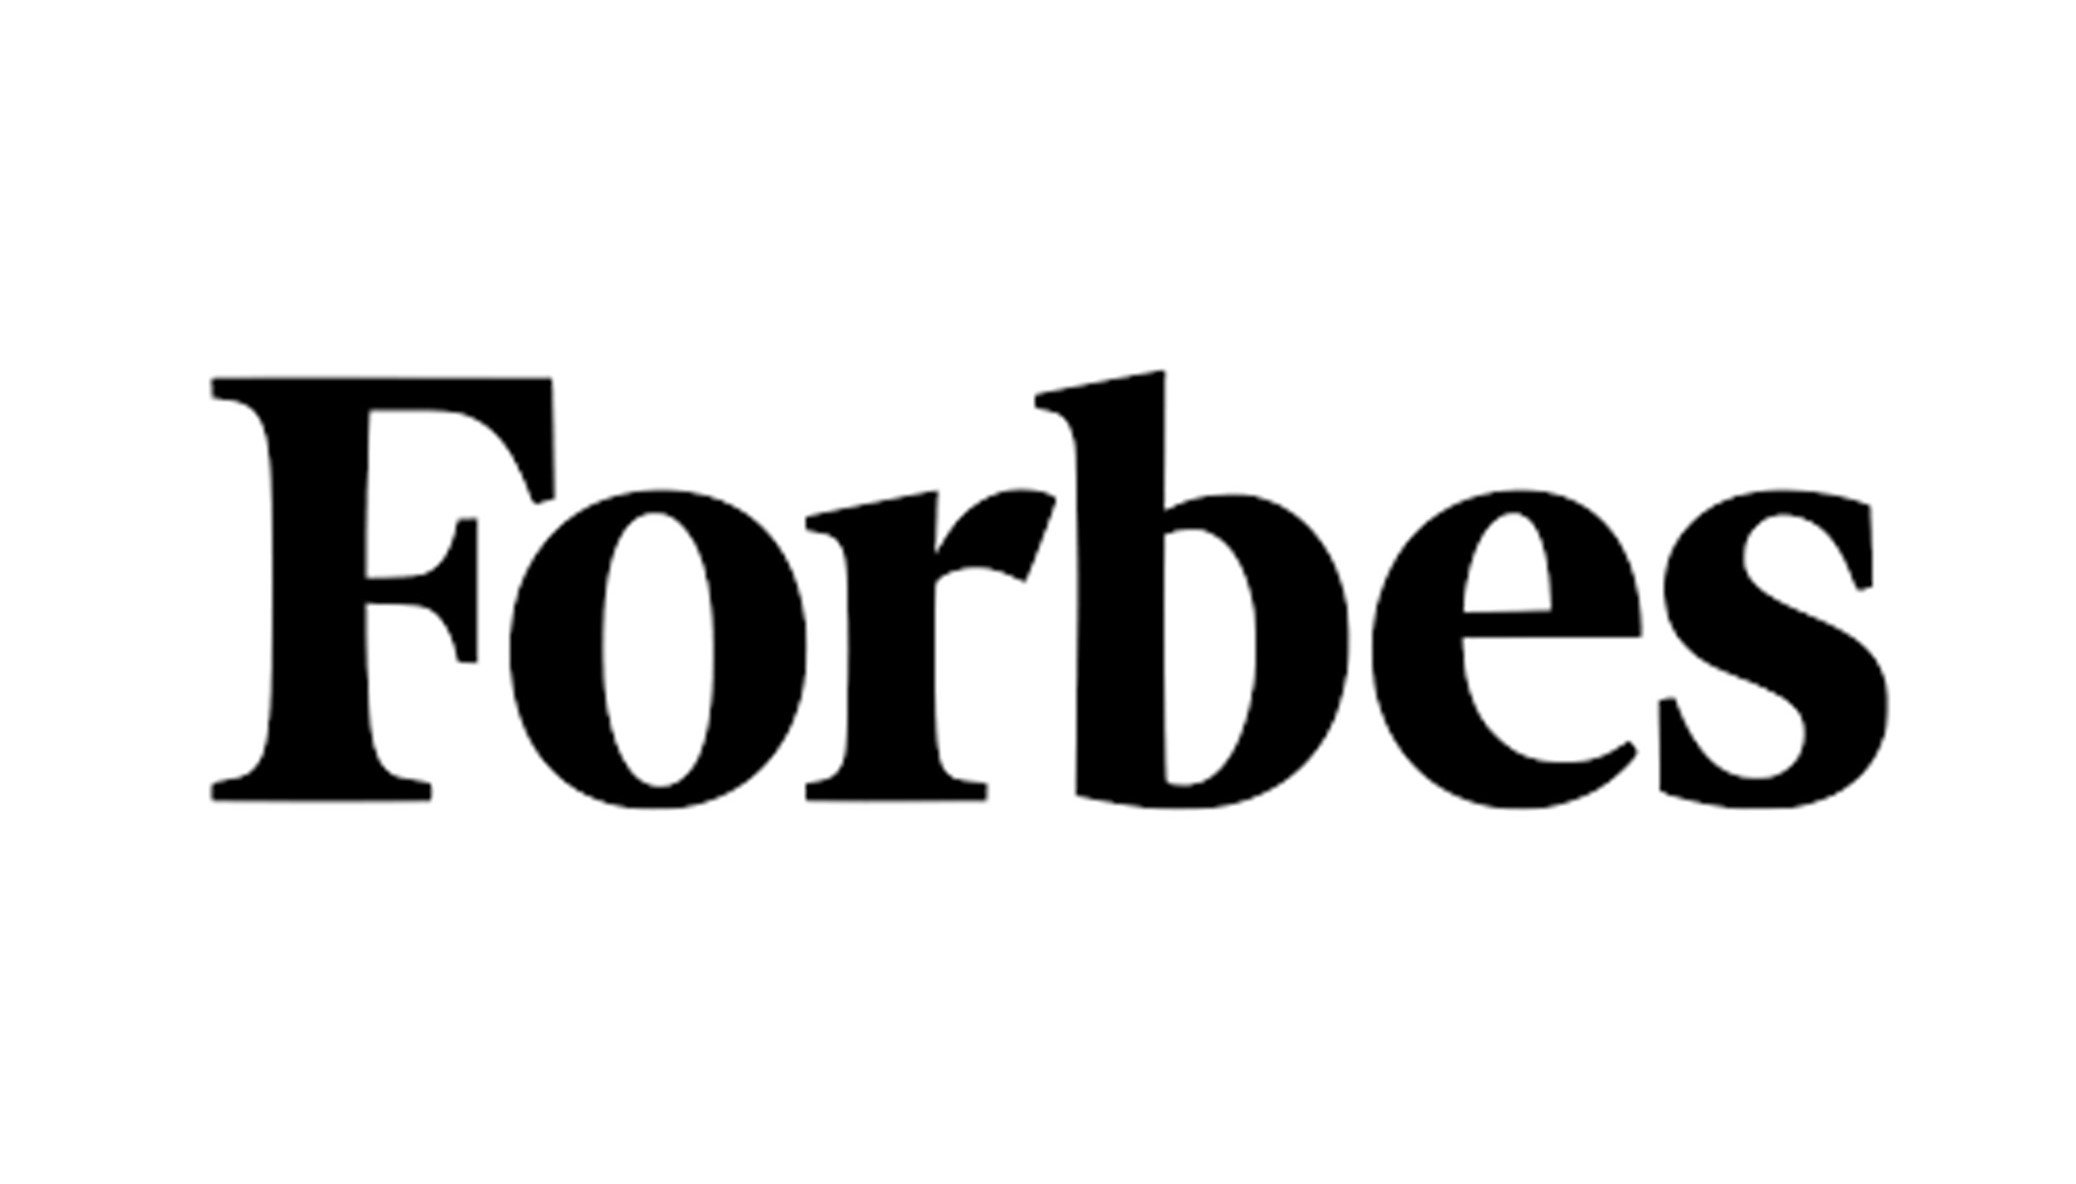 Forbes On Promo In The Workplace